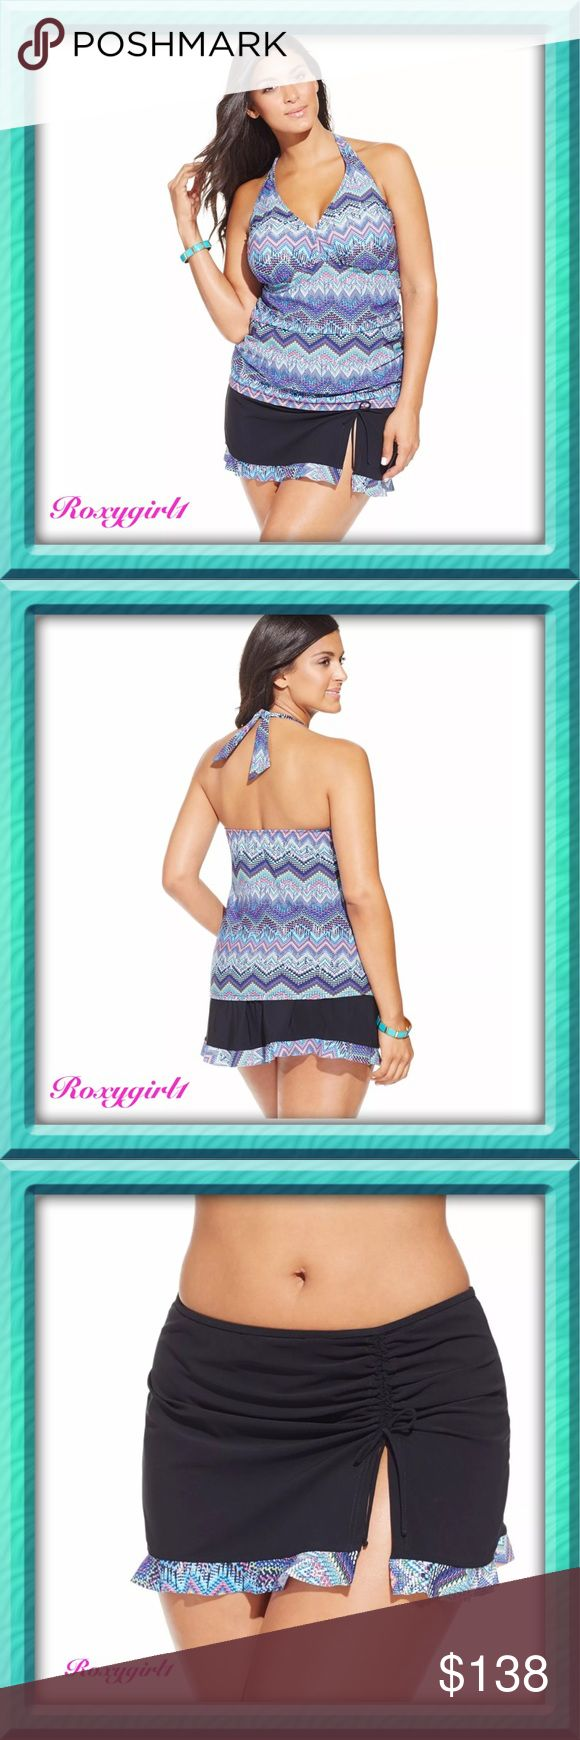 Profile by Gottex Skyline Skirted Tankini Profile by Gottex Skyline Skirted Tankini Brand New! This suit is the bright choice with a flattering chevron pattern in sunset hues & a flattering halter neckline. Sewn in wireless soft cups.  V-neckline.  Ruching under bust.  Ruched at the sides to camouflage tummy.  Skirted bottom with attached brief Solid color; printed hem; slit at left front; adjustable tie at front Pull-on style Full bottom coverage Fabric: sun, water & chlorine resistant…